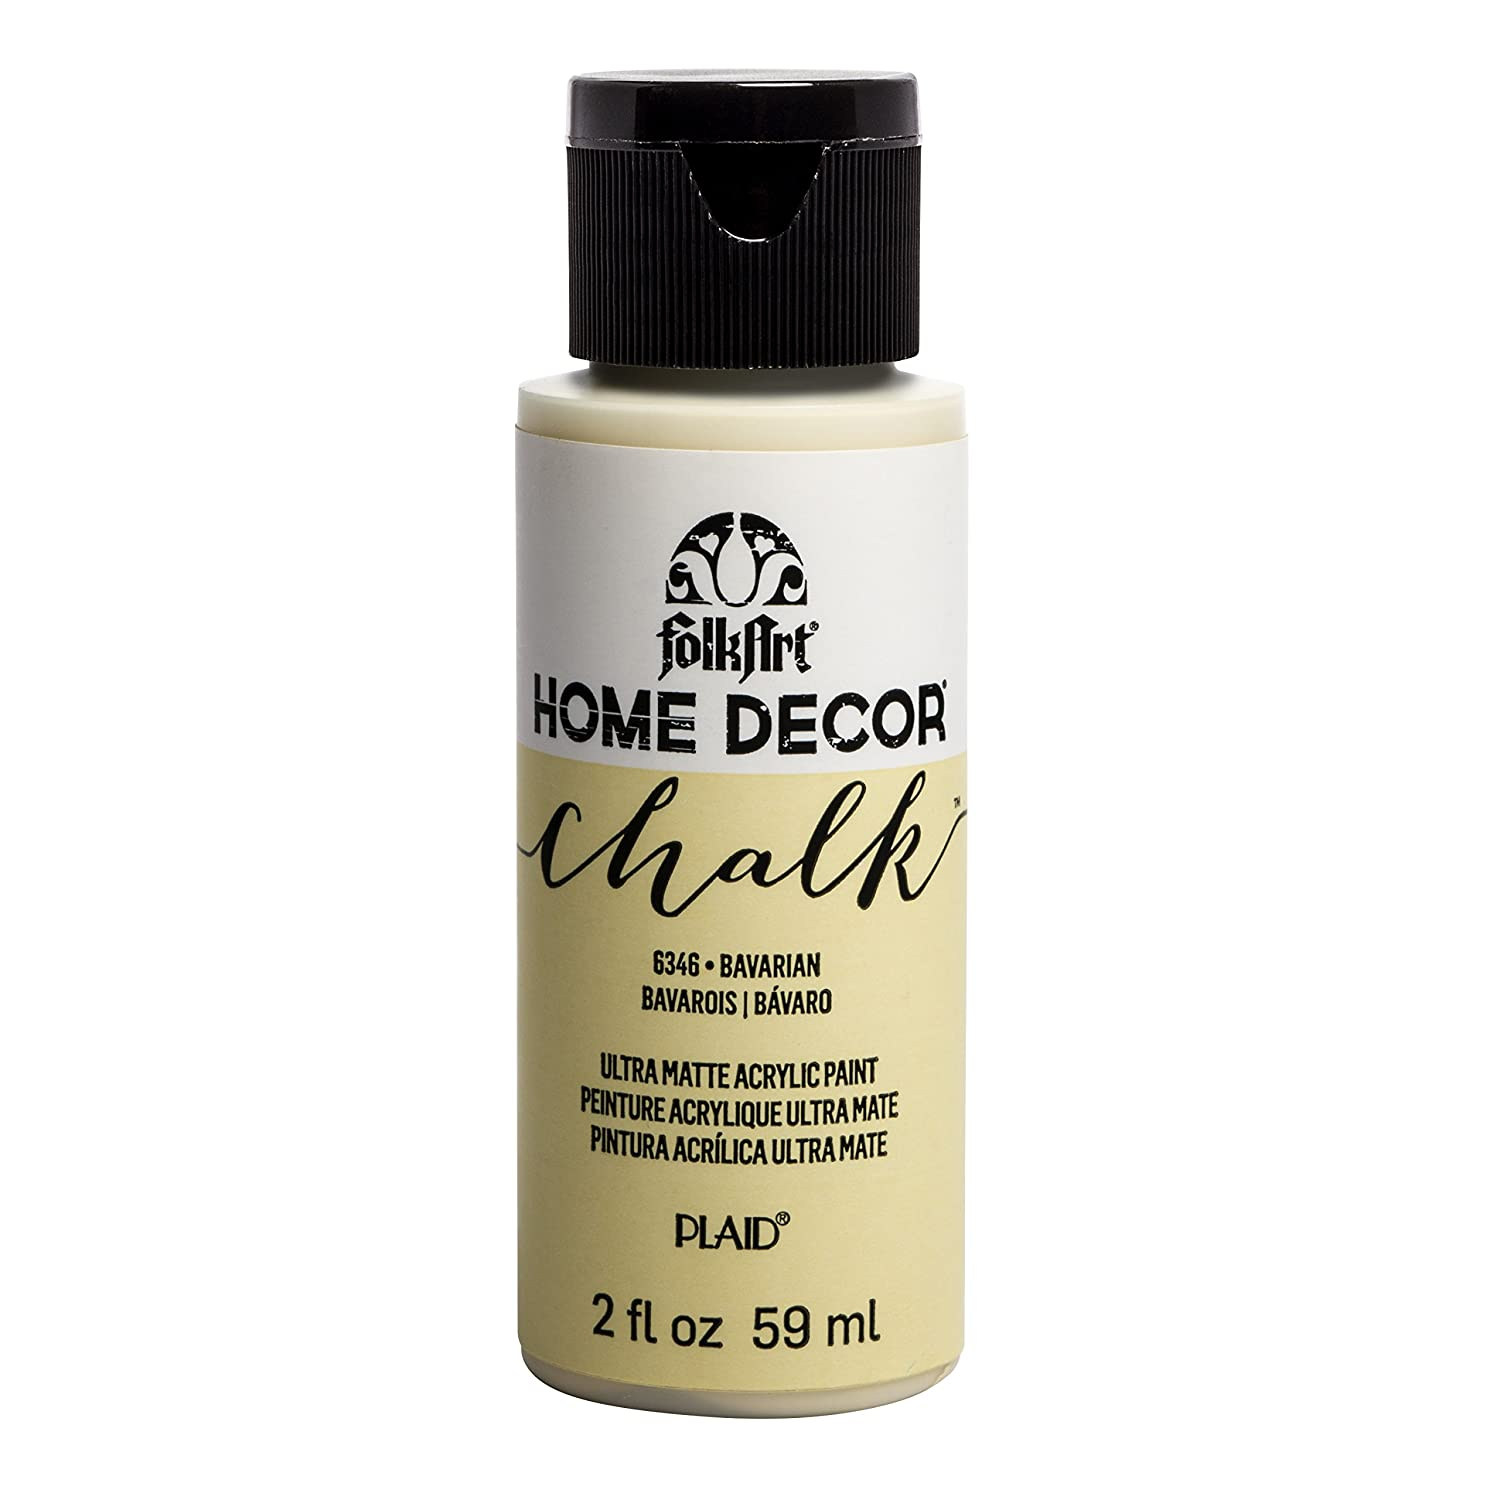 FolkArt 6346 Home Décor Chalk Furniture & Craft Paint in Assorted Colors, 2oz, Bavarian